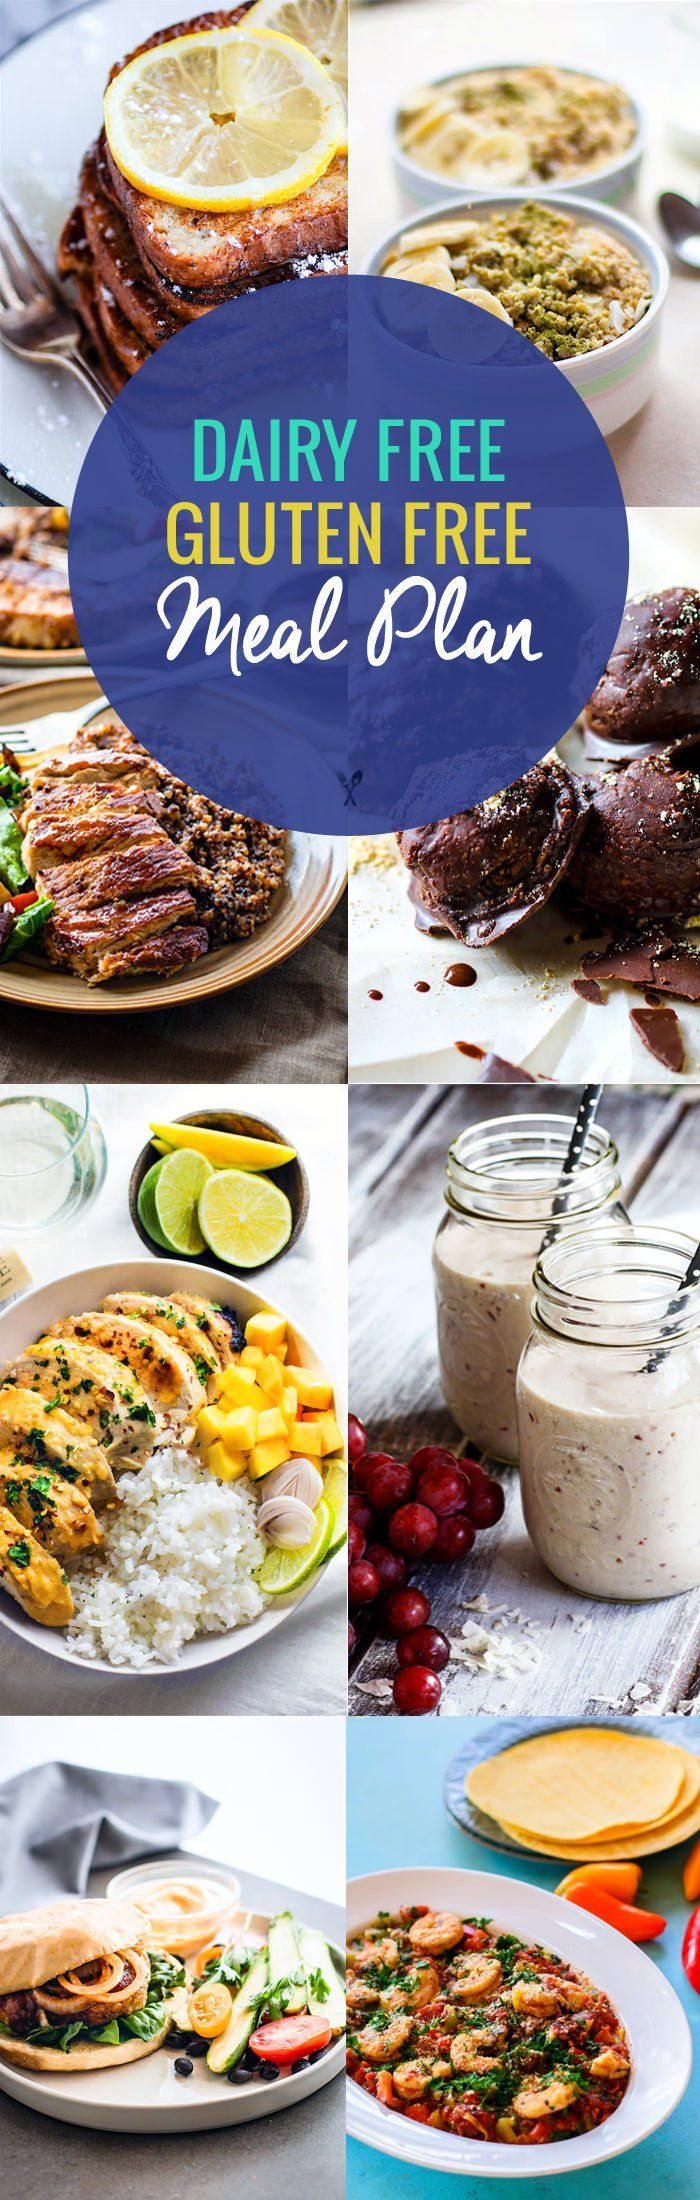 These recipes look really good! -AL Dairy Free, Gluten Free Meal Plan Recipes. Should You Try Eating Dairy Free?